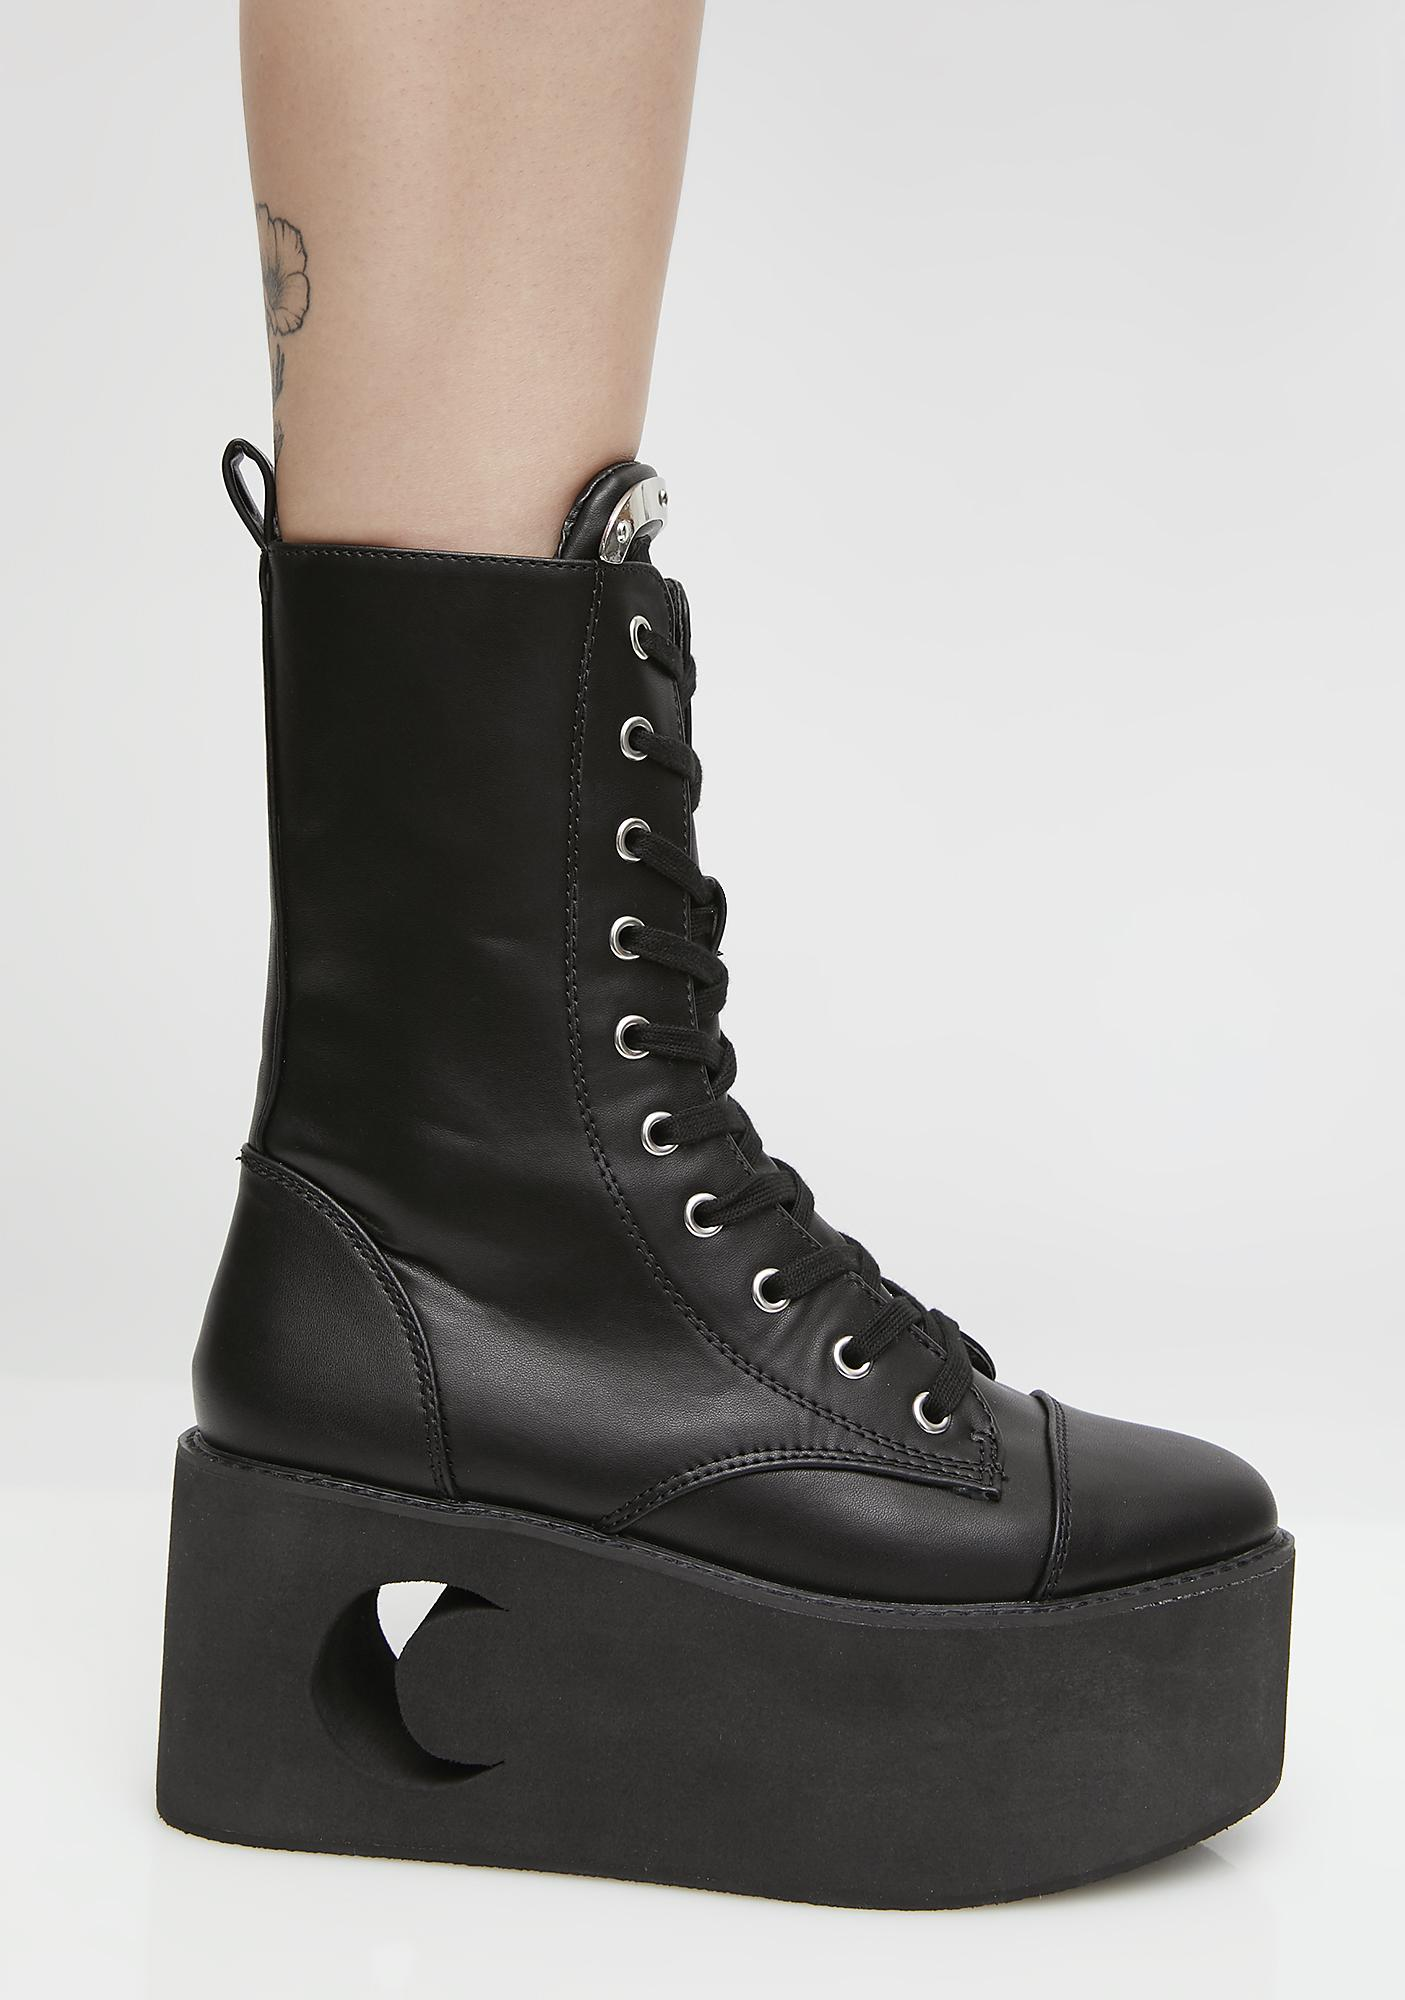 Killstar Eternal Eclipse Platform Boots